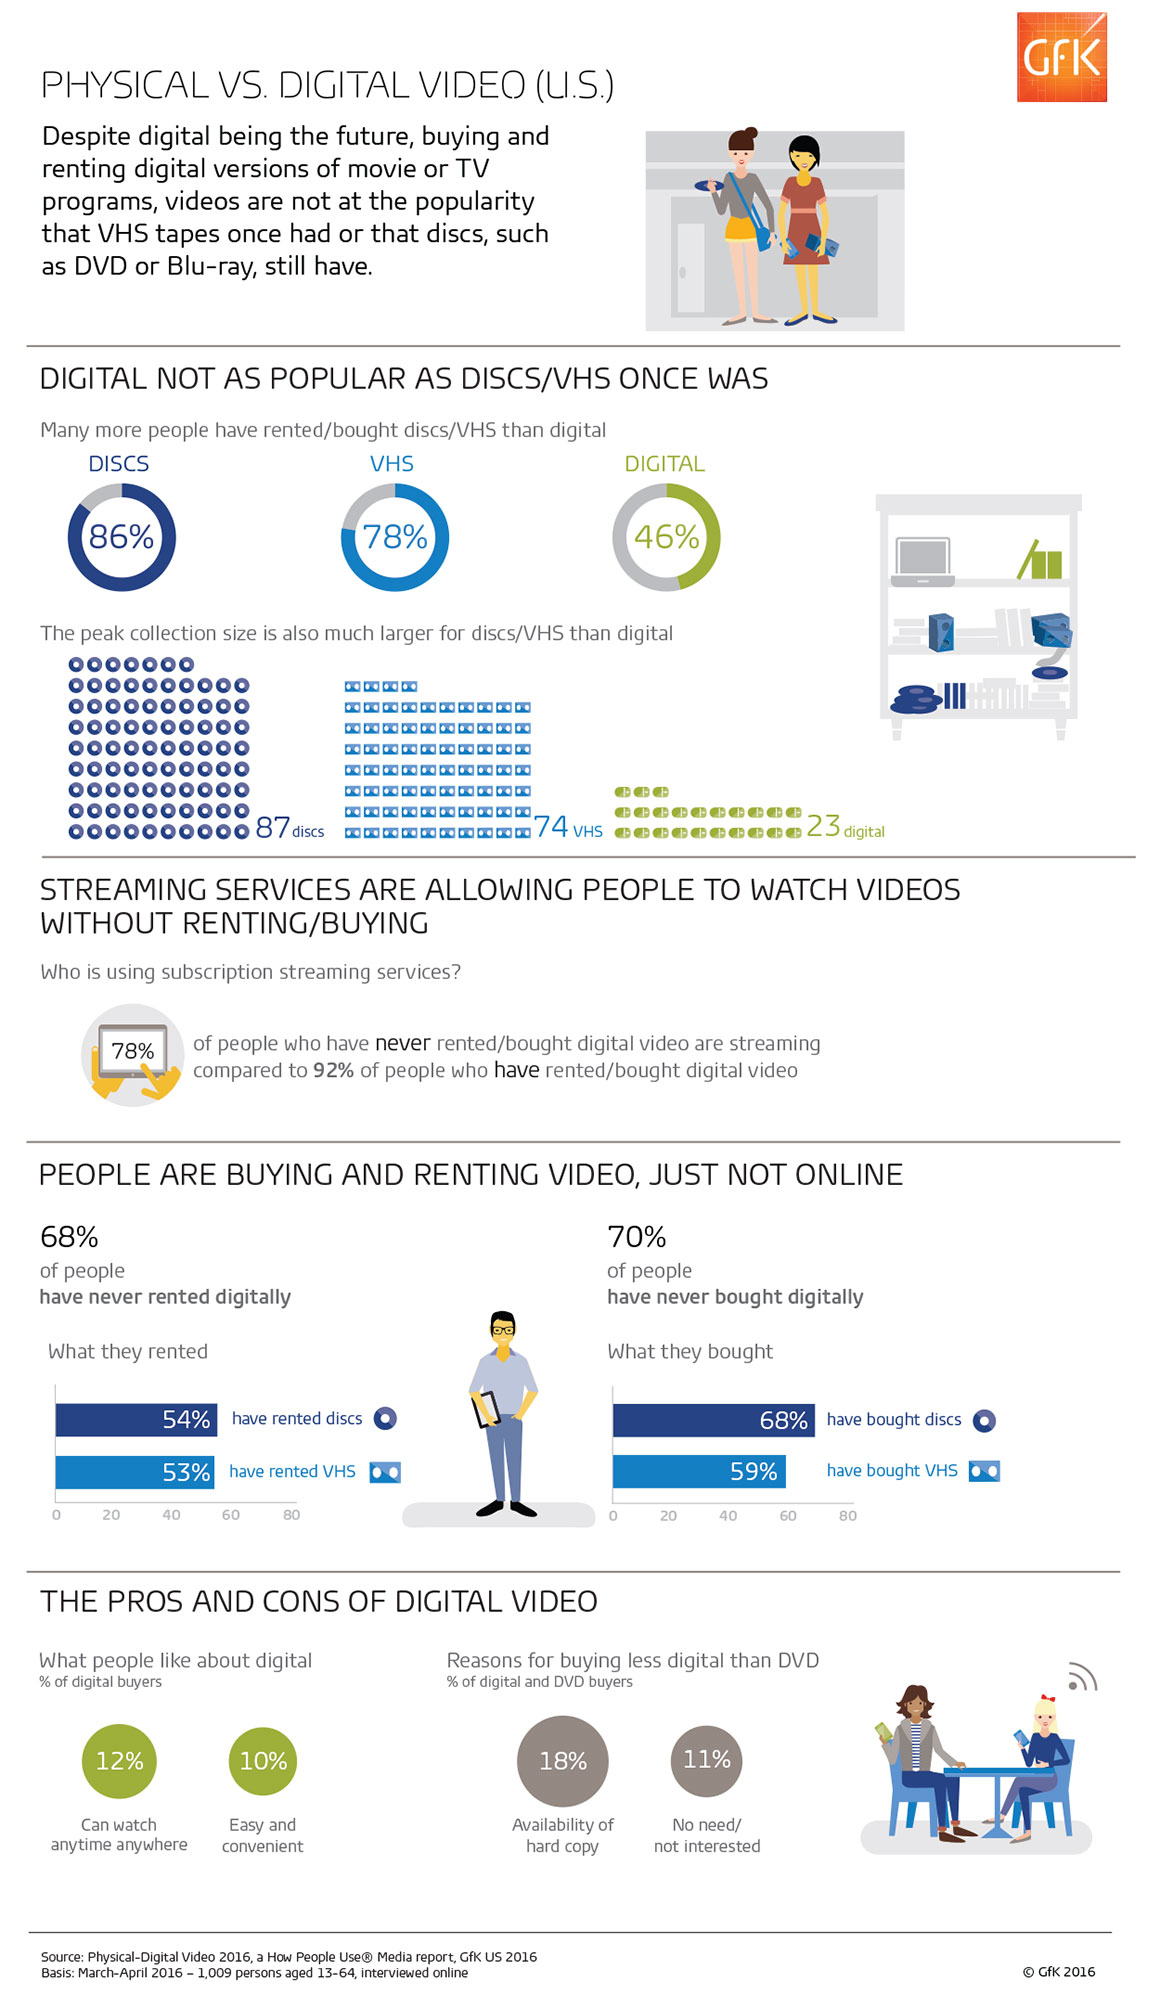 GfK_Physical-Digital_Video_Report_2016_Infographic-1160